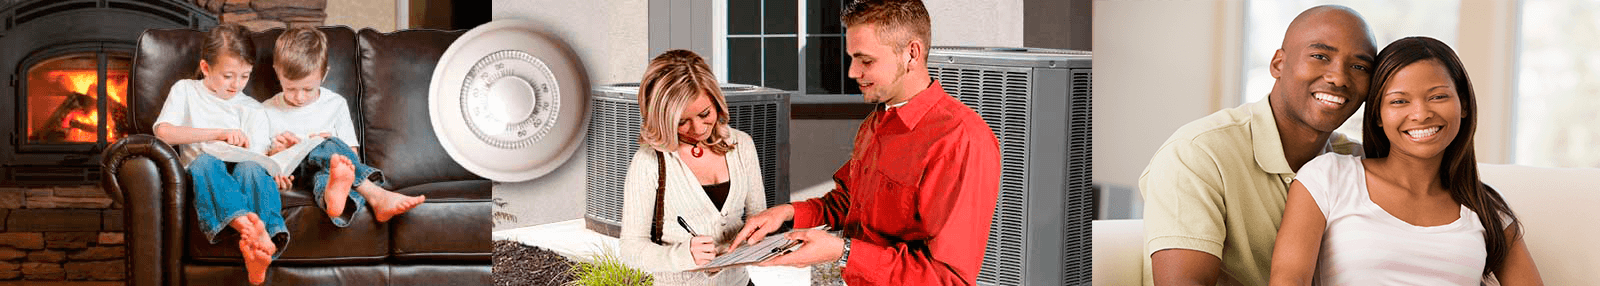 Heating_and_air_conditioning_technician